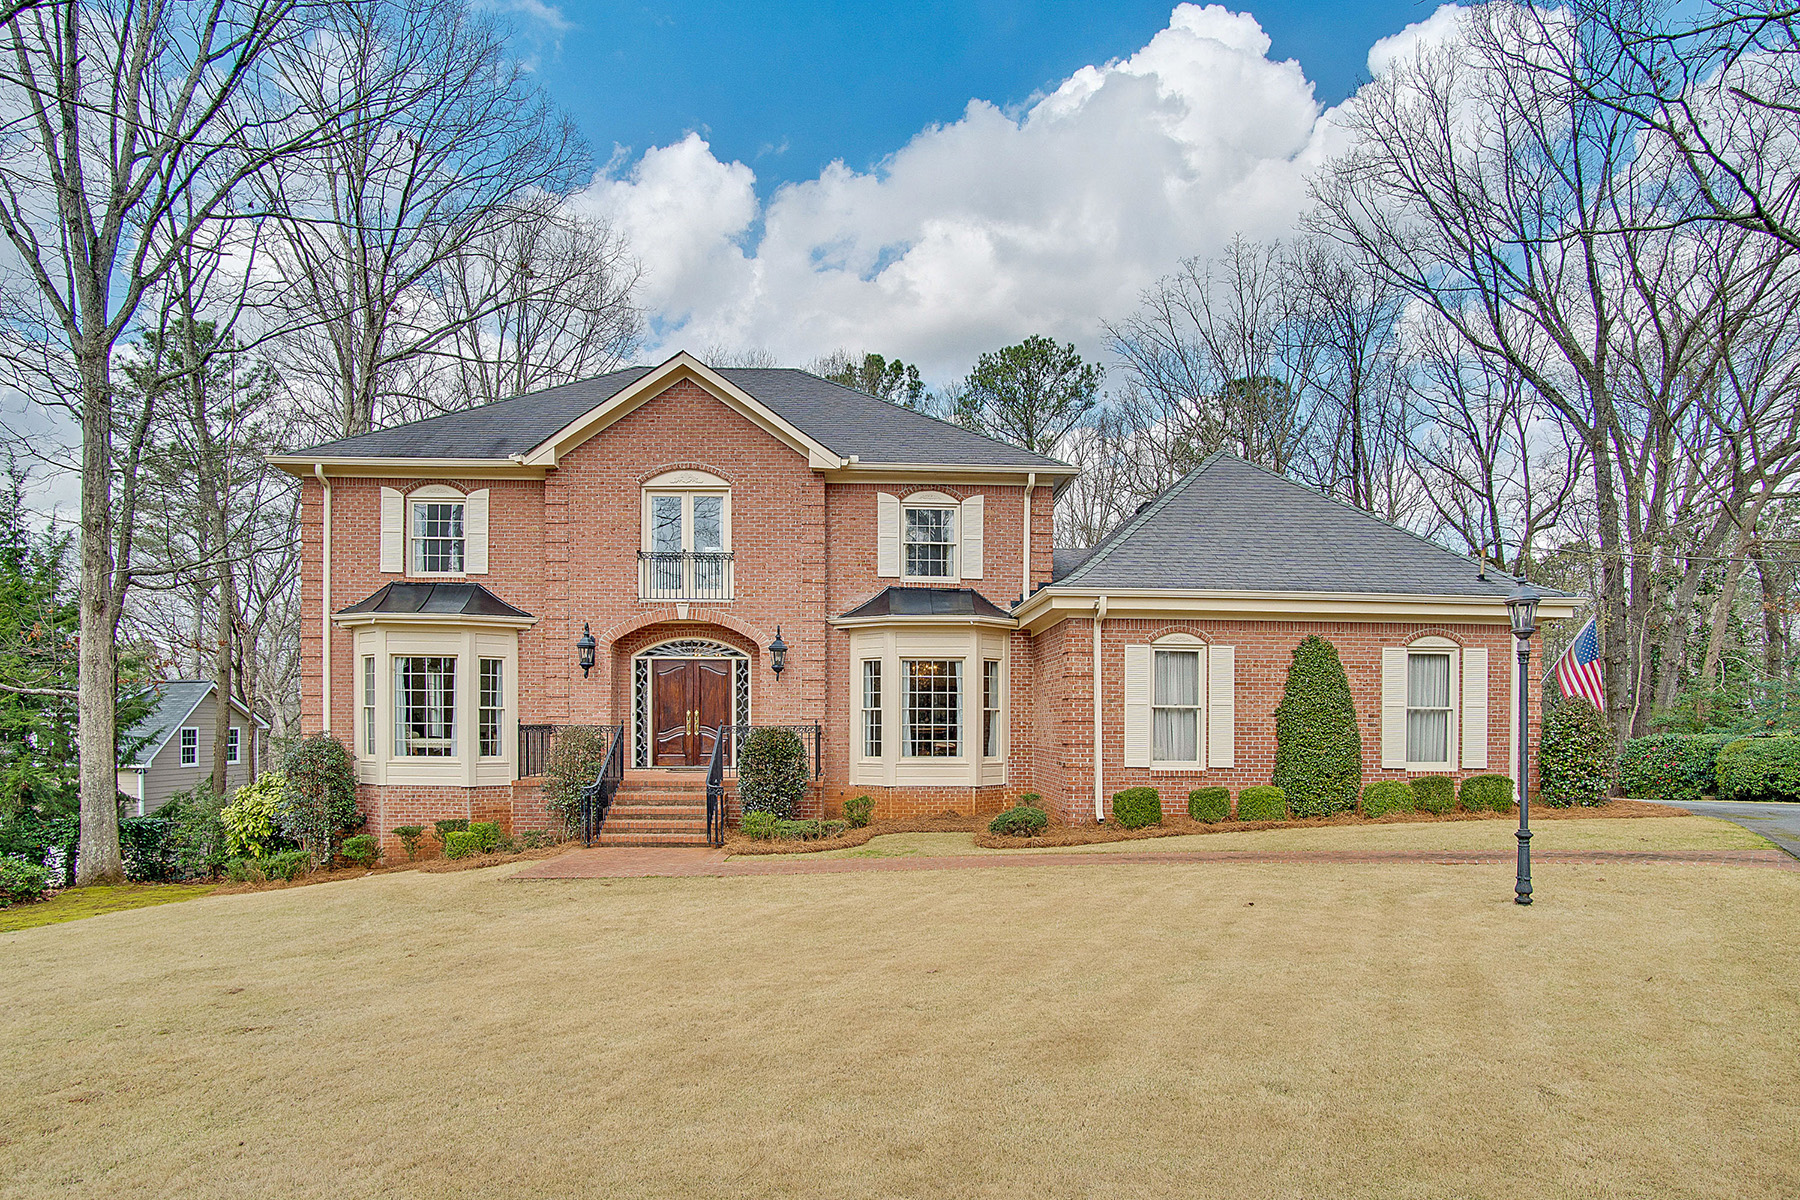 Single Family Home for Sale at Huntcliff Home On Over An Acre 8905 Huntcliff Trace Sandy Springs, Georgia 30350 United States